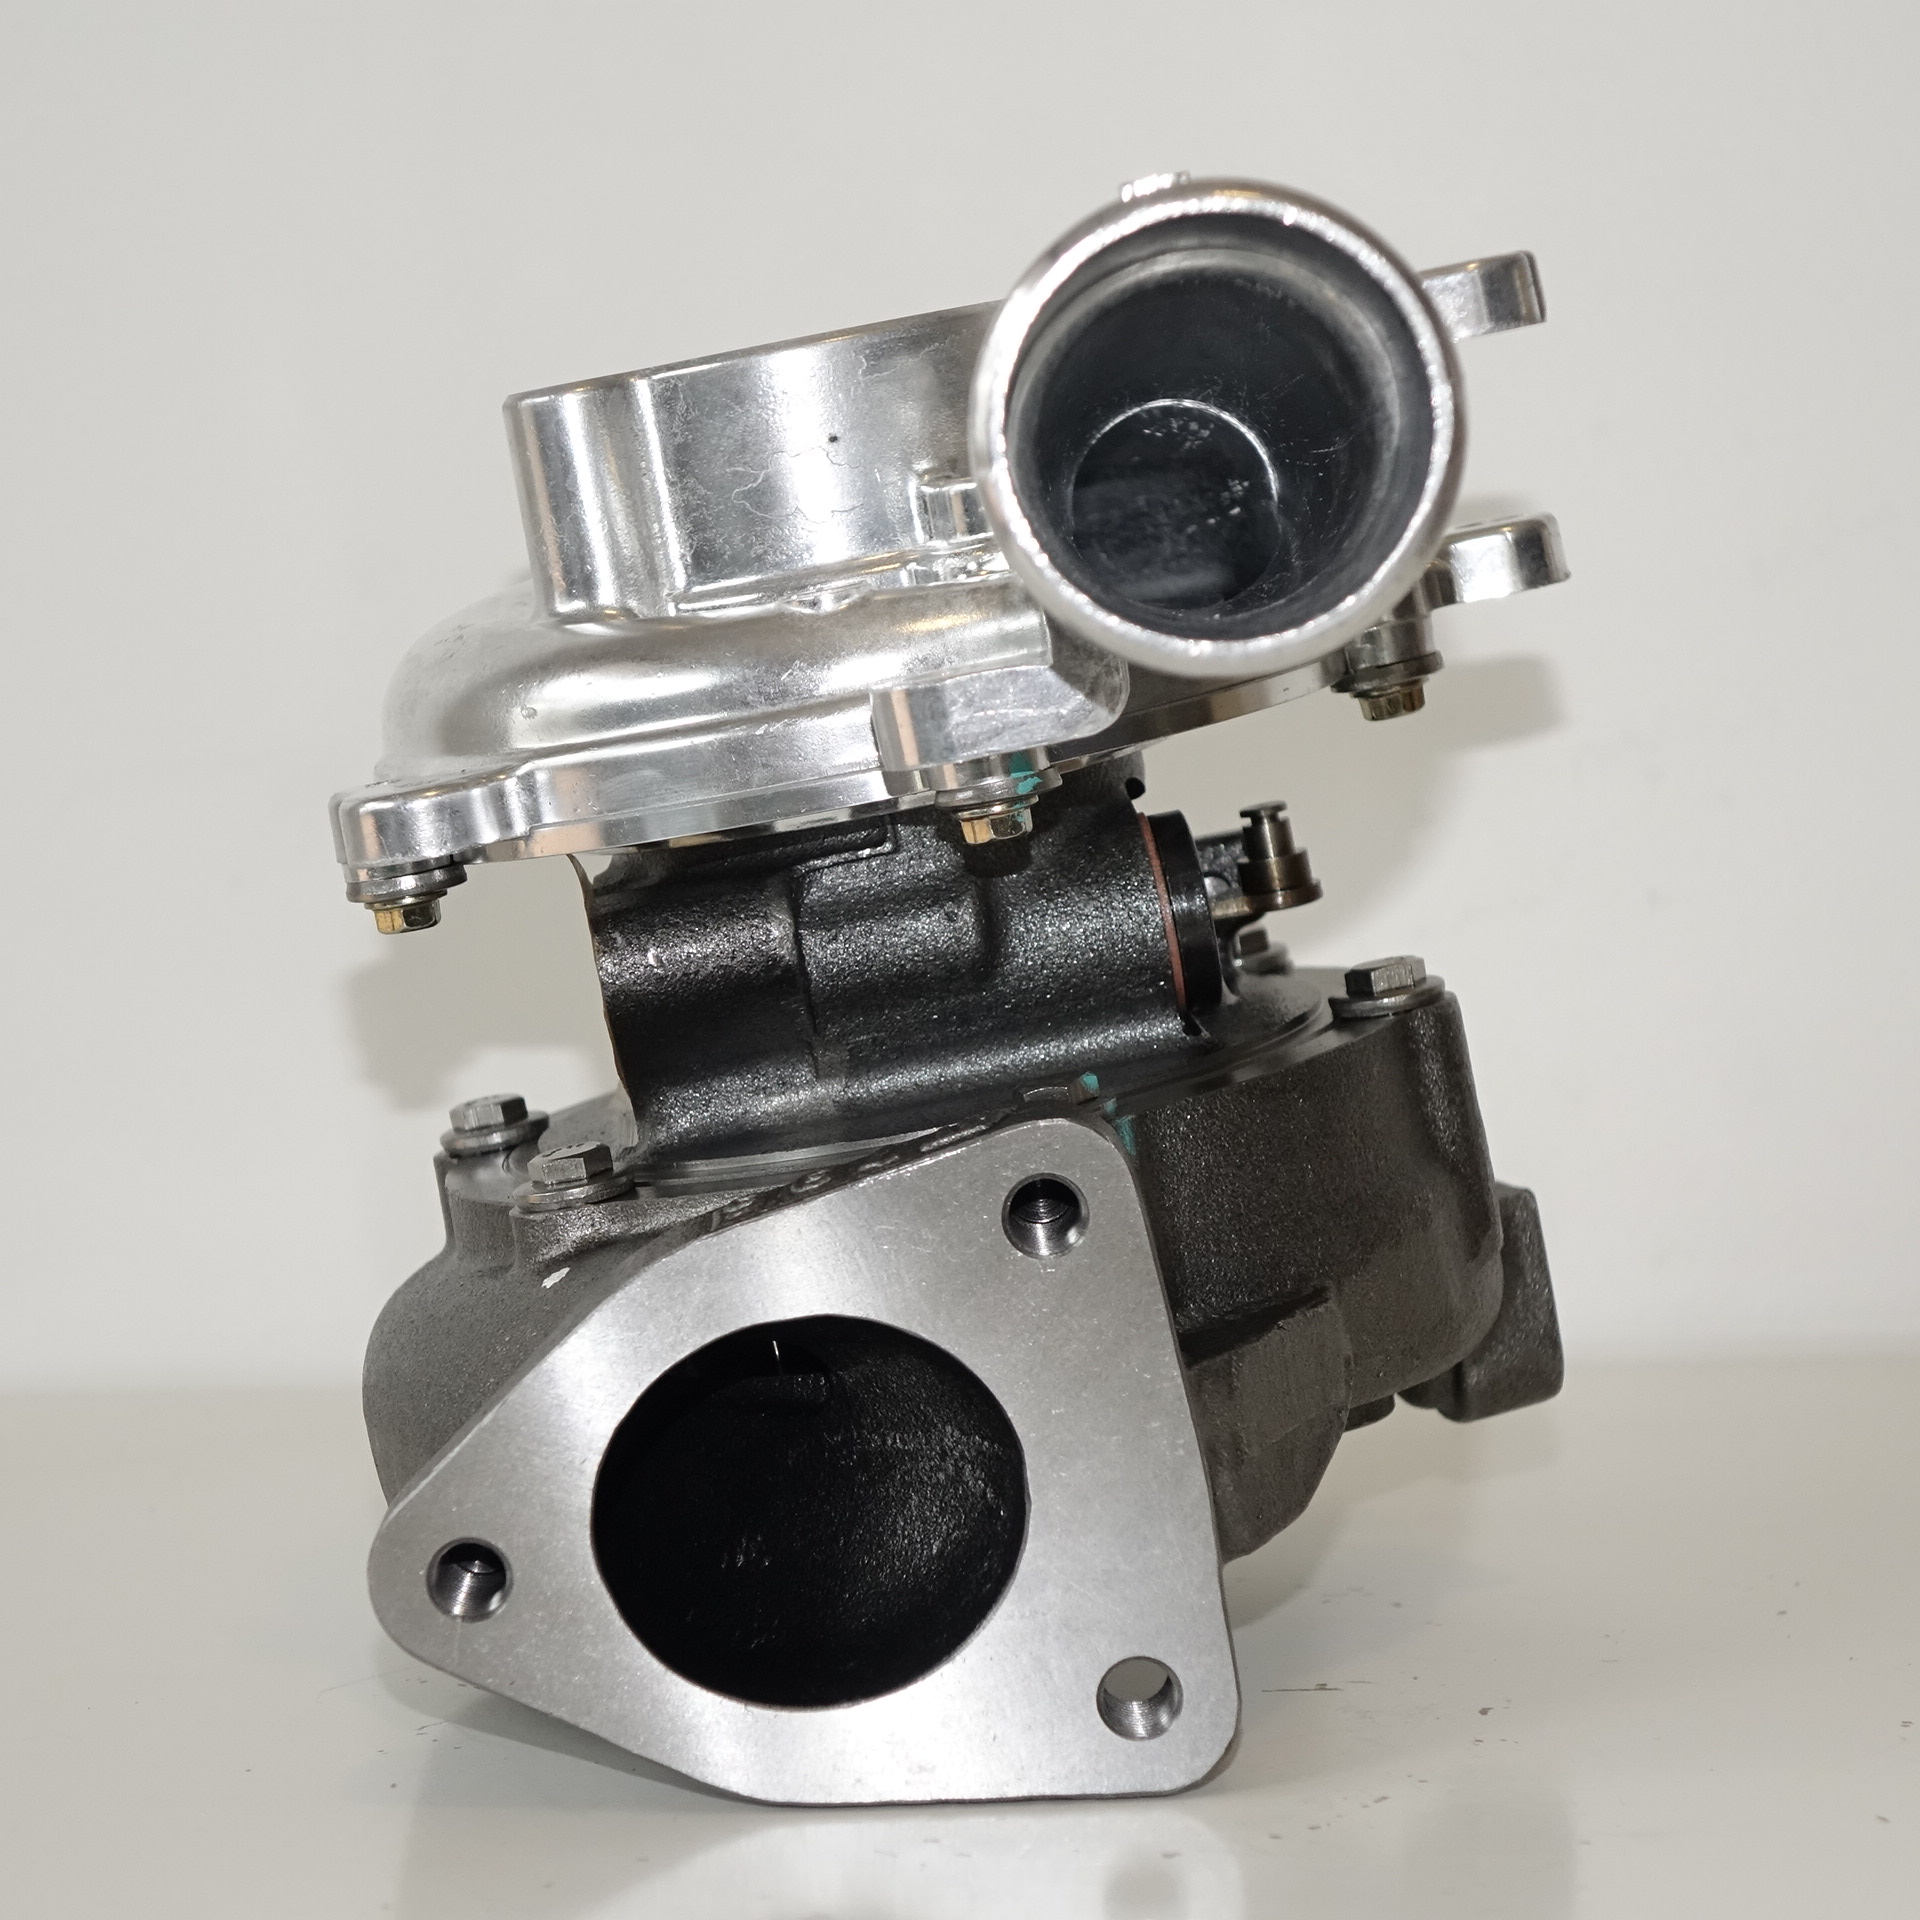 Turbine Used In Turbocharger: Turbochargers Suitable For Toyota Hilux 1KD 3.0L CT16v